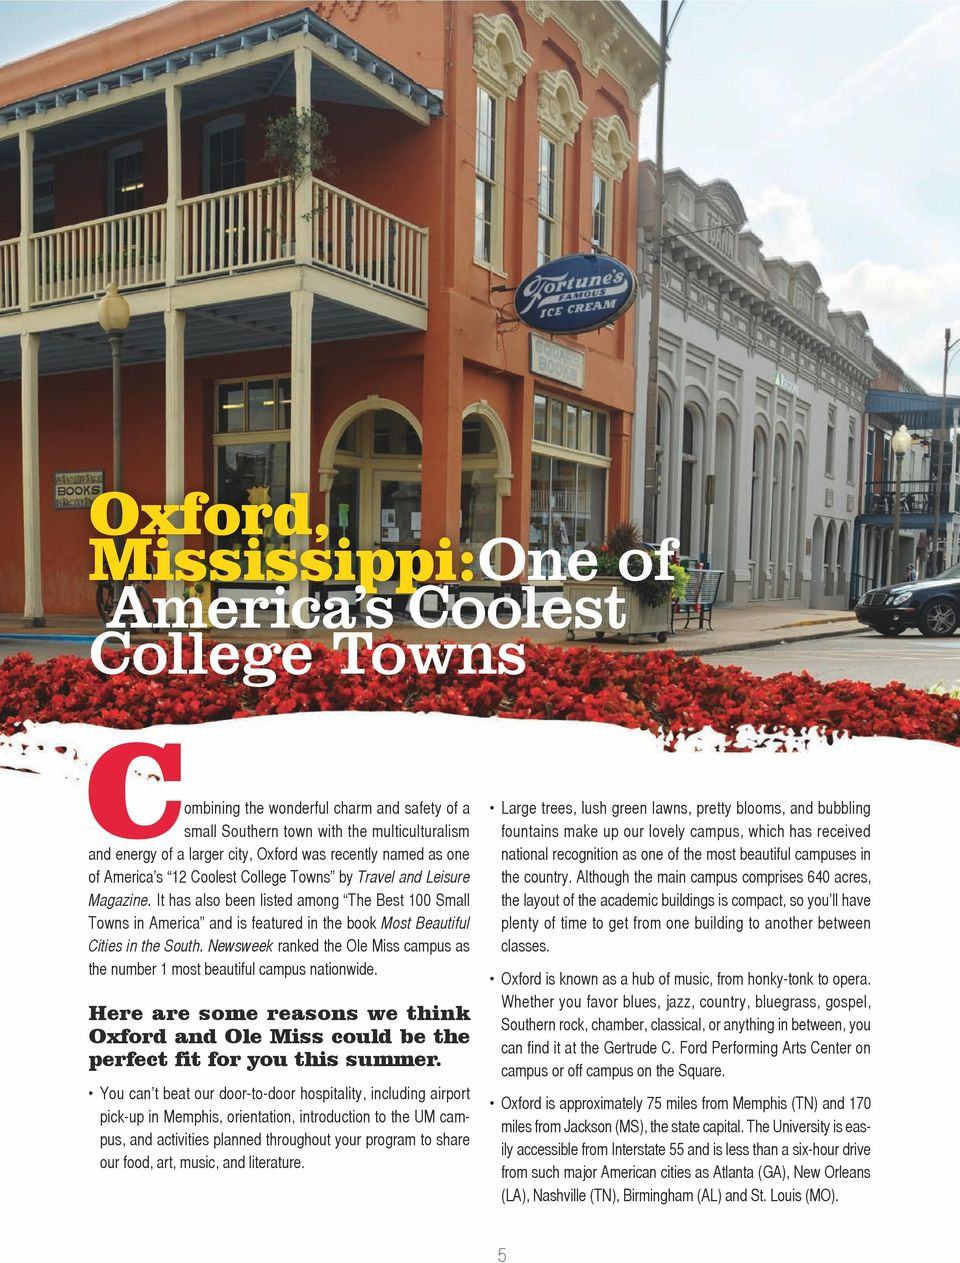 It has also been listed among The Best 100 Small Towns in America and is featured in the book Most Beautiful Cities in the South.